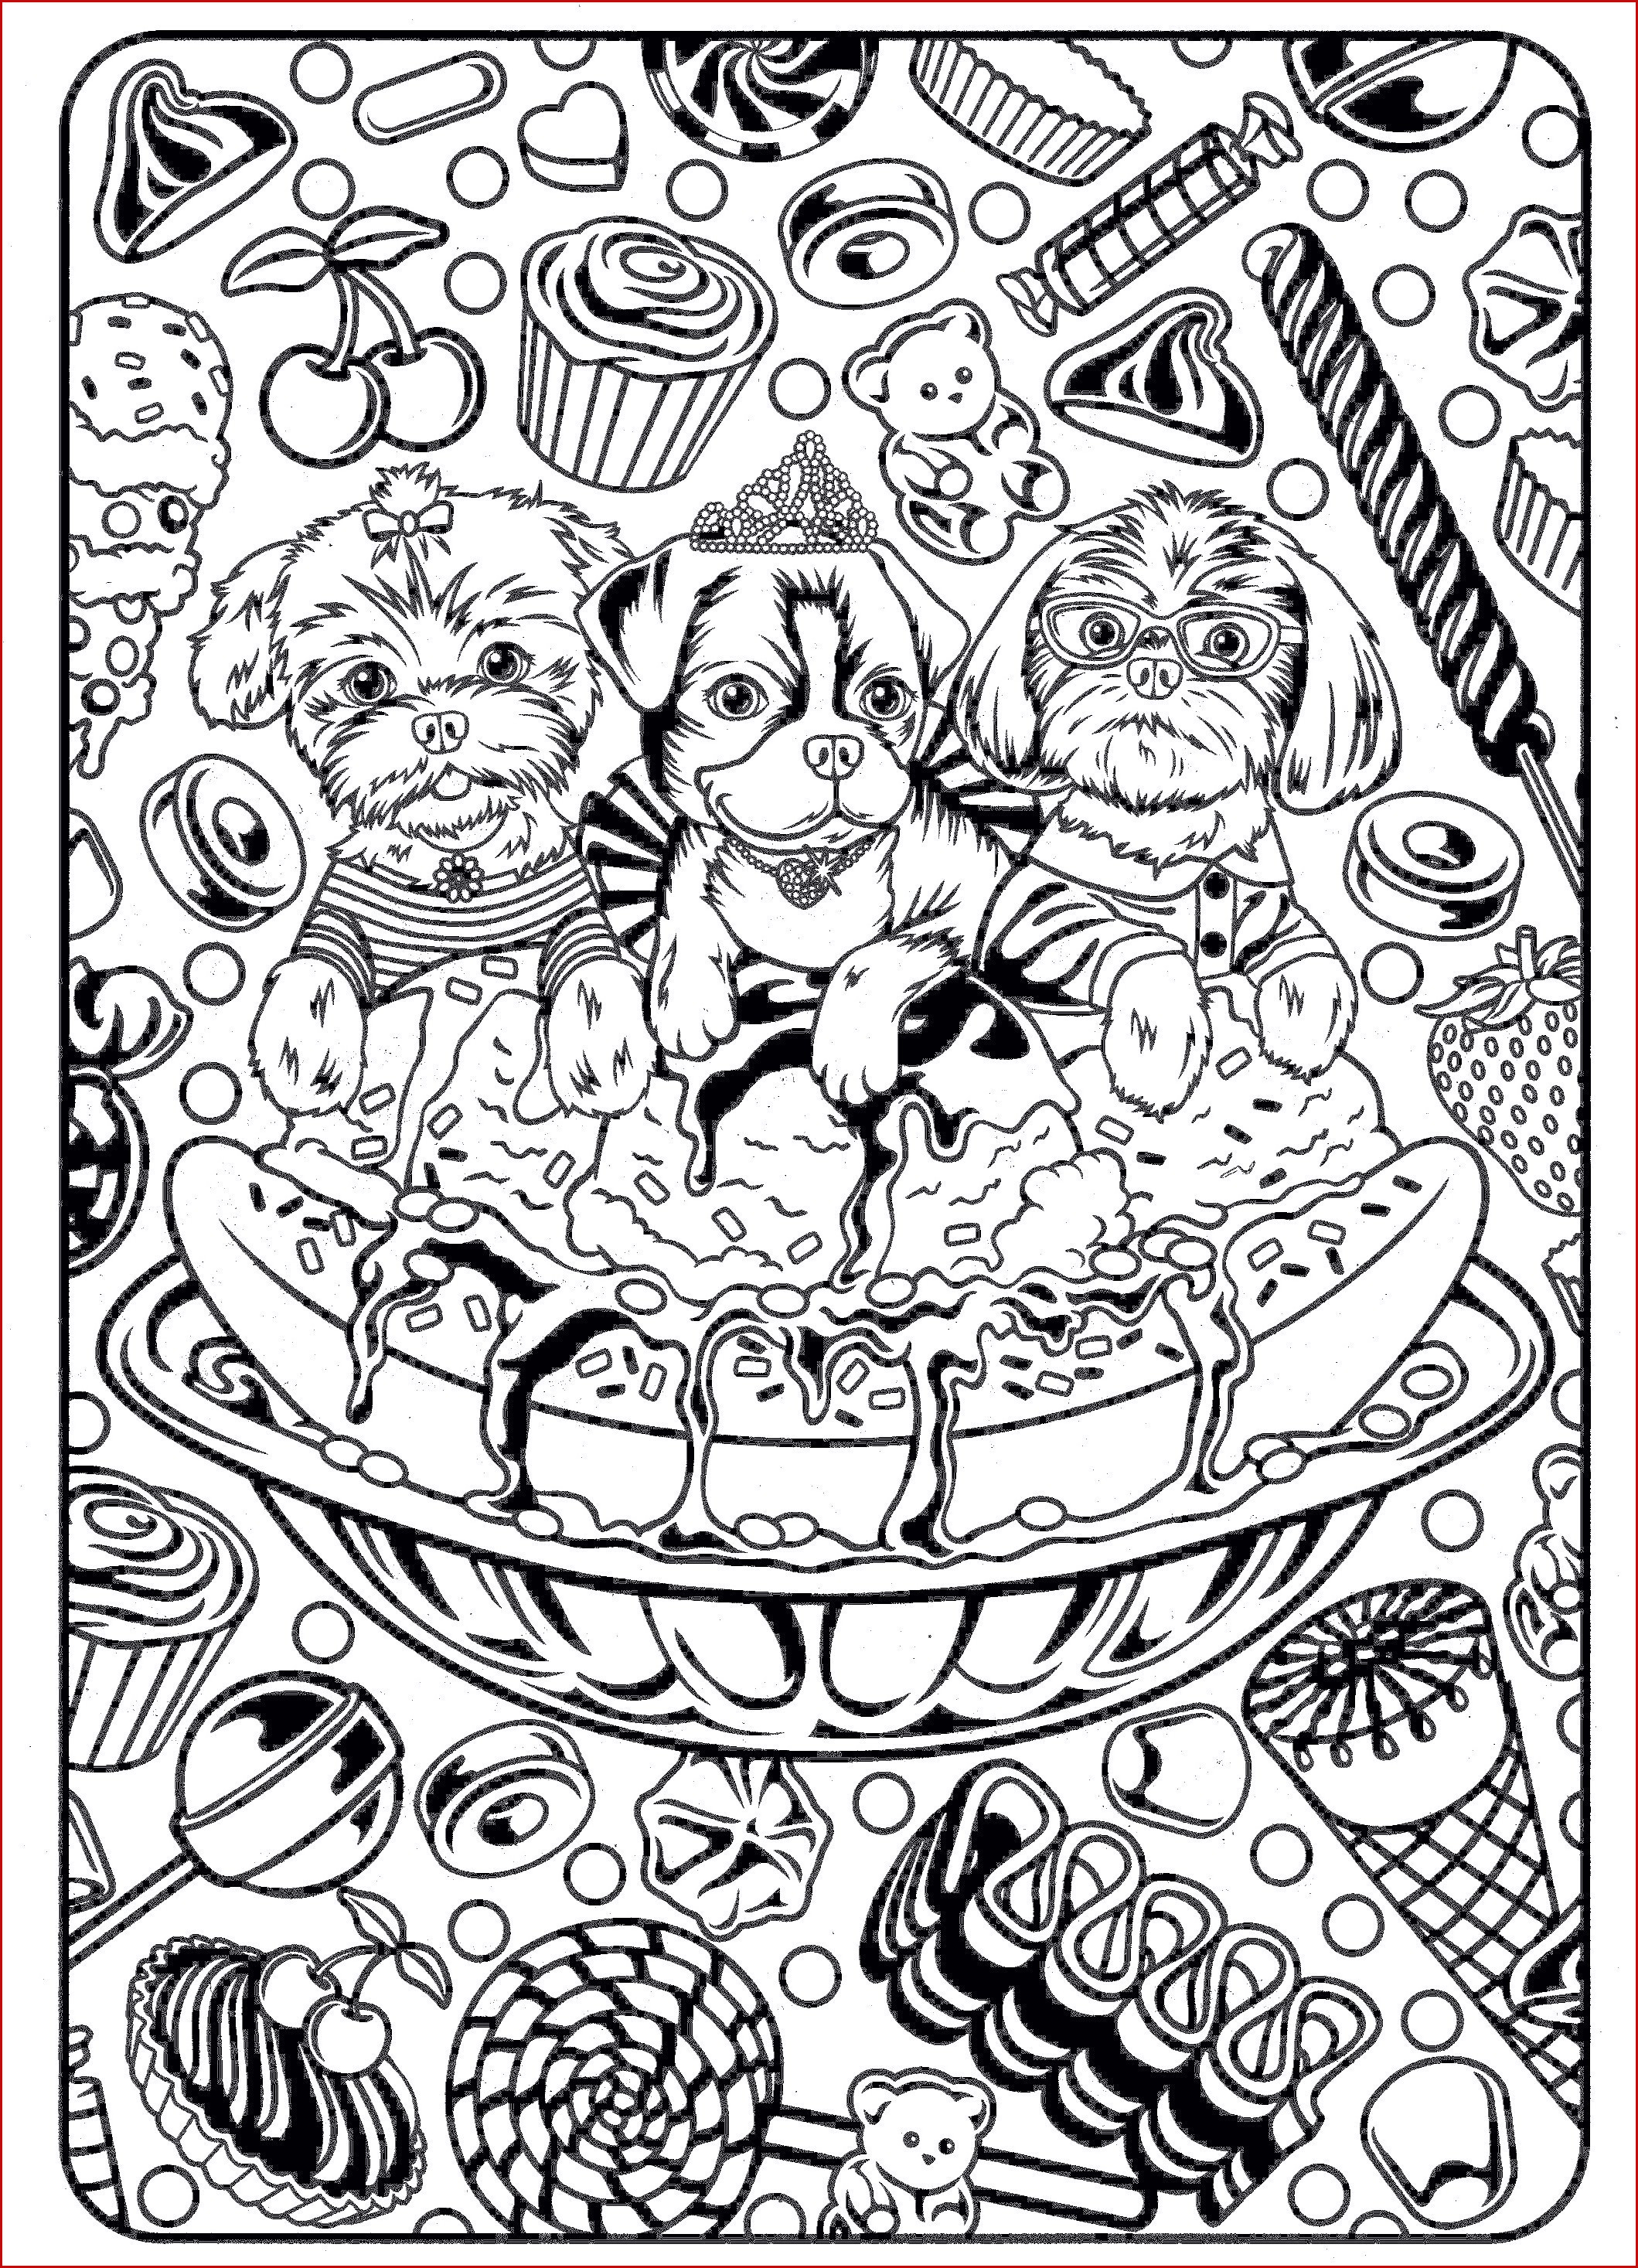 Doodle Art Coloring Pages Extraordinary Doodle Coloring Pages Photos Of Coloring Pages For